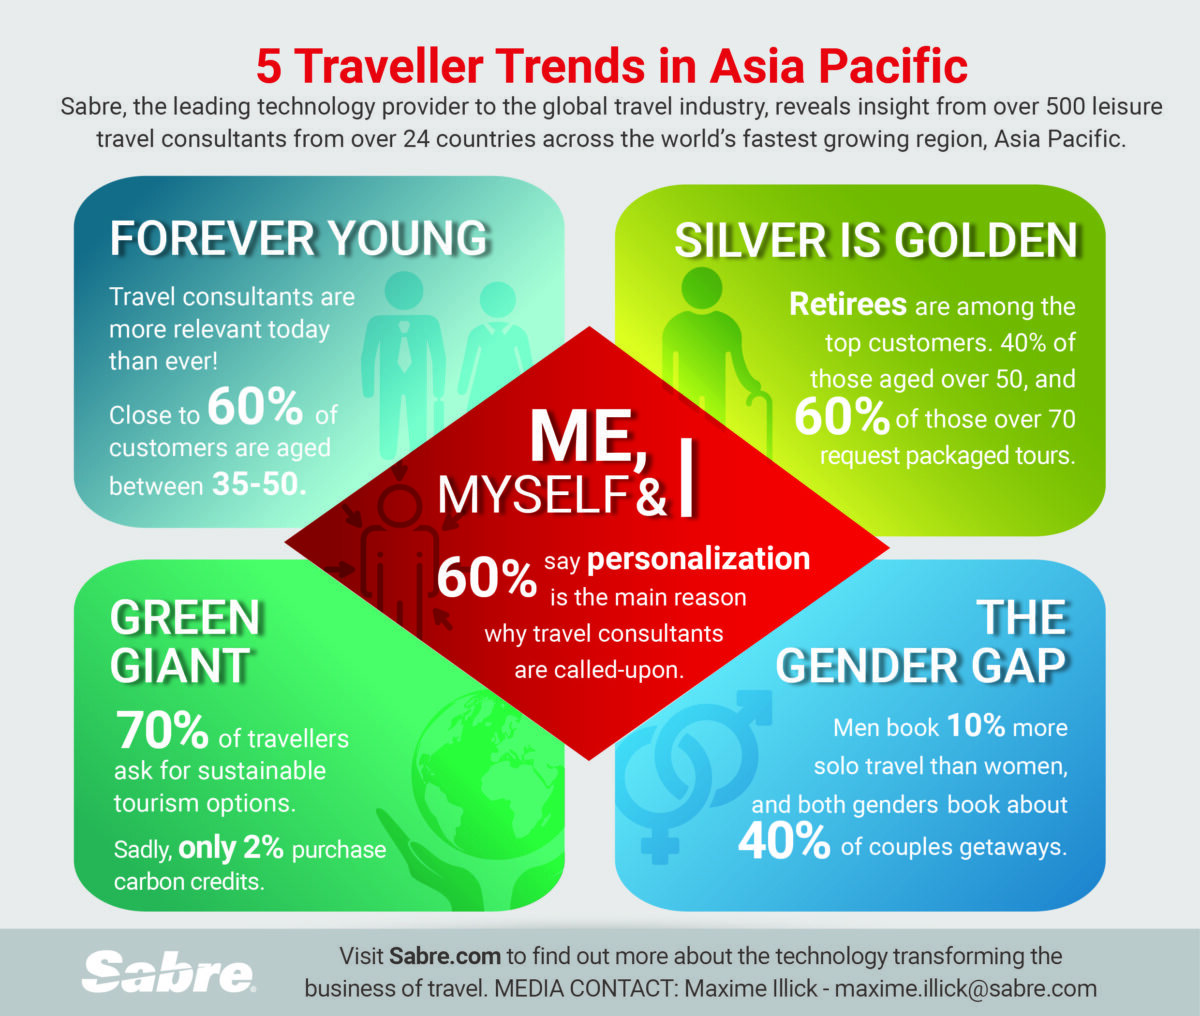 Sabre_2020-Traveller-Trends_Infographic_FINAL-HR-1200x1016.jpg